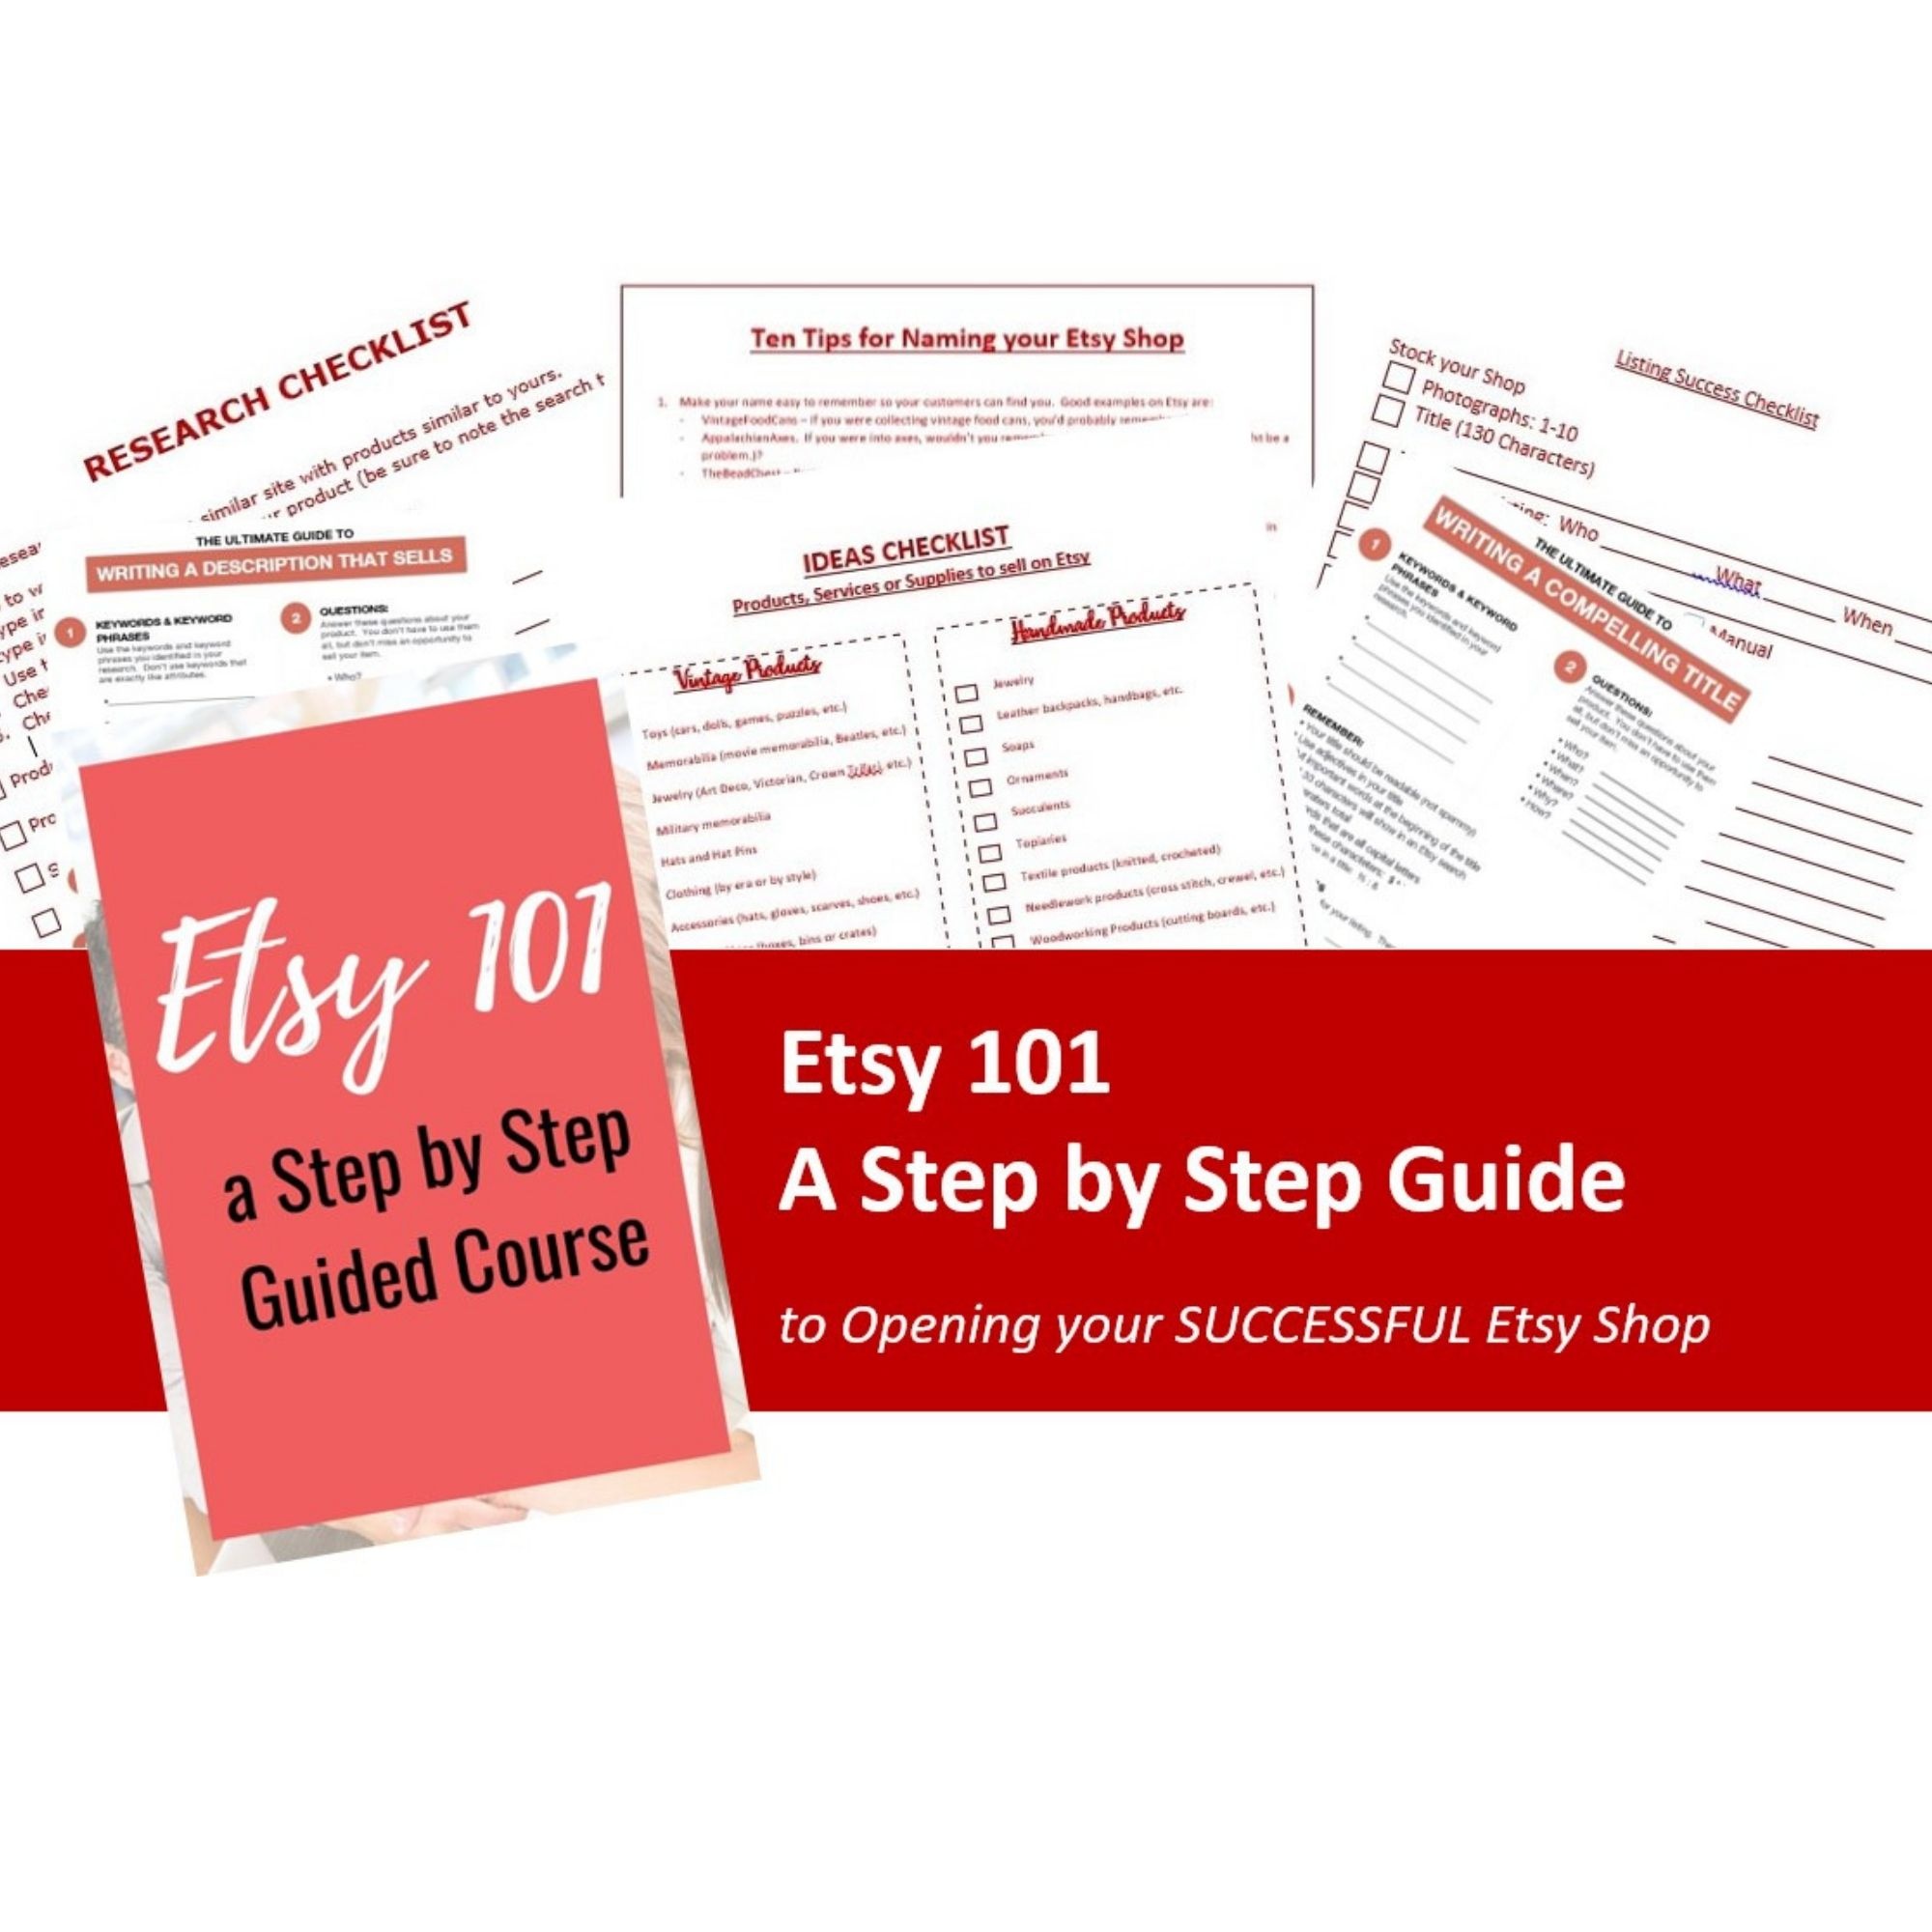 Etsy 101 course graphic